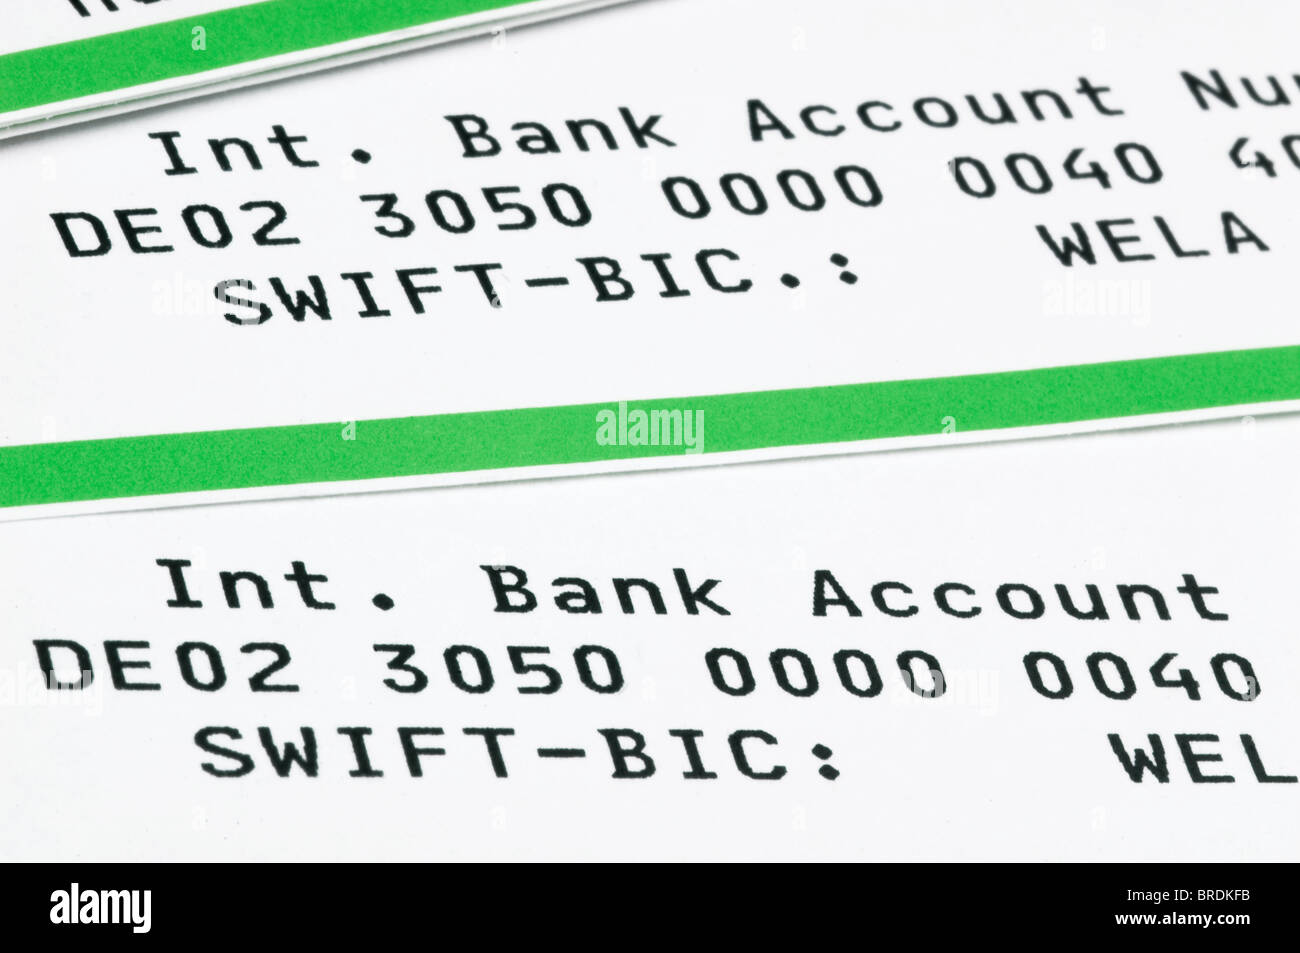 Swift-Code - Stock Image